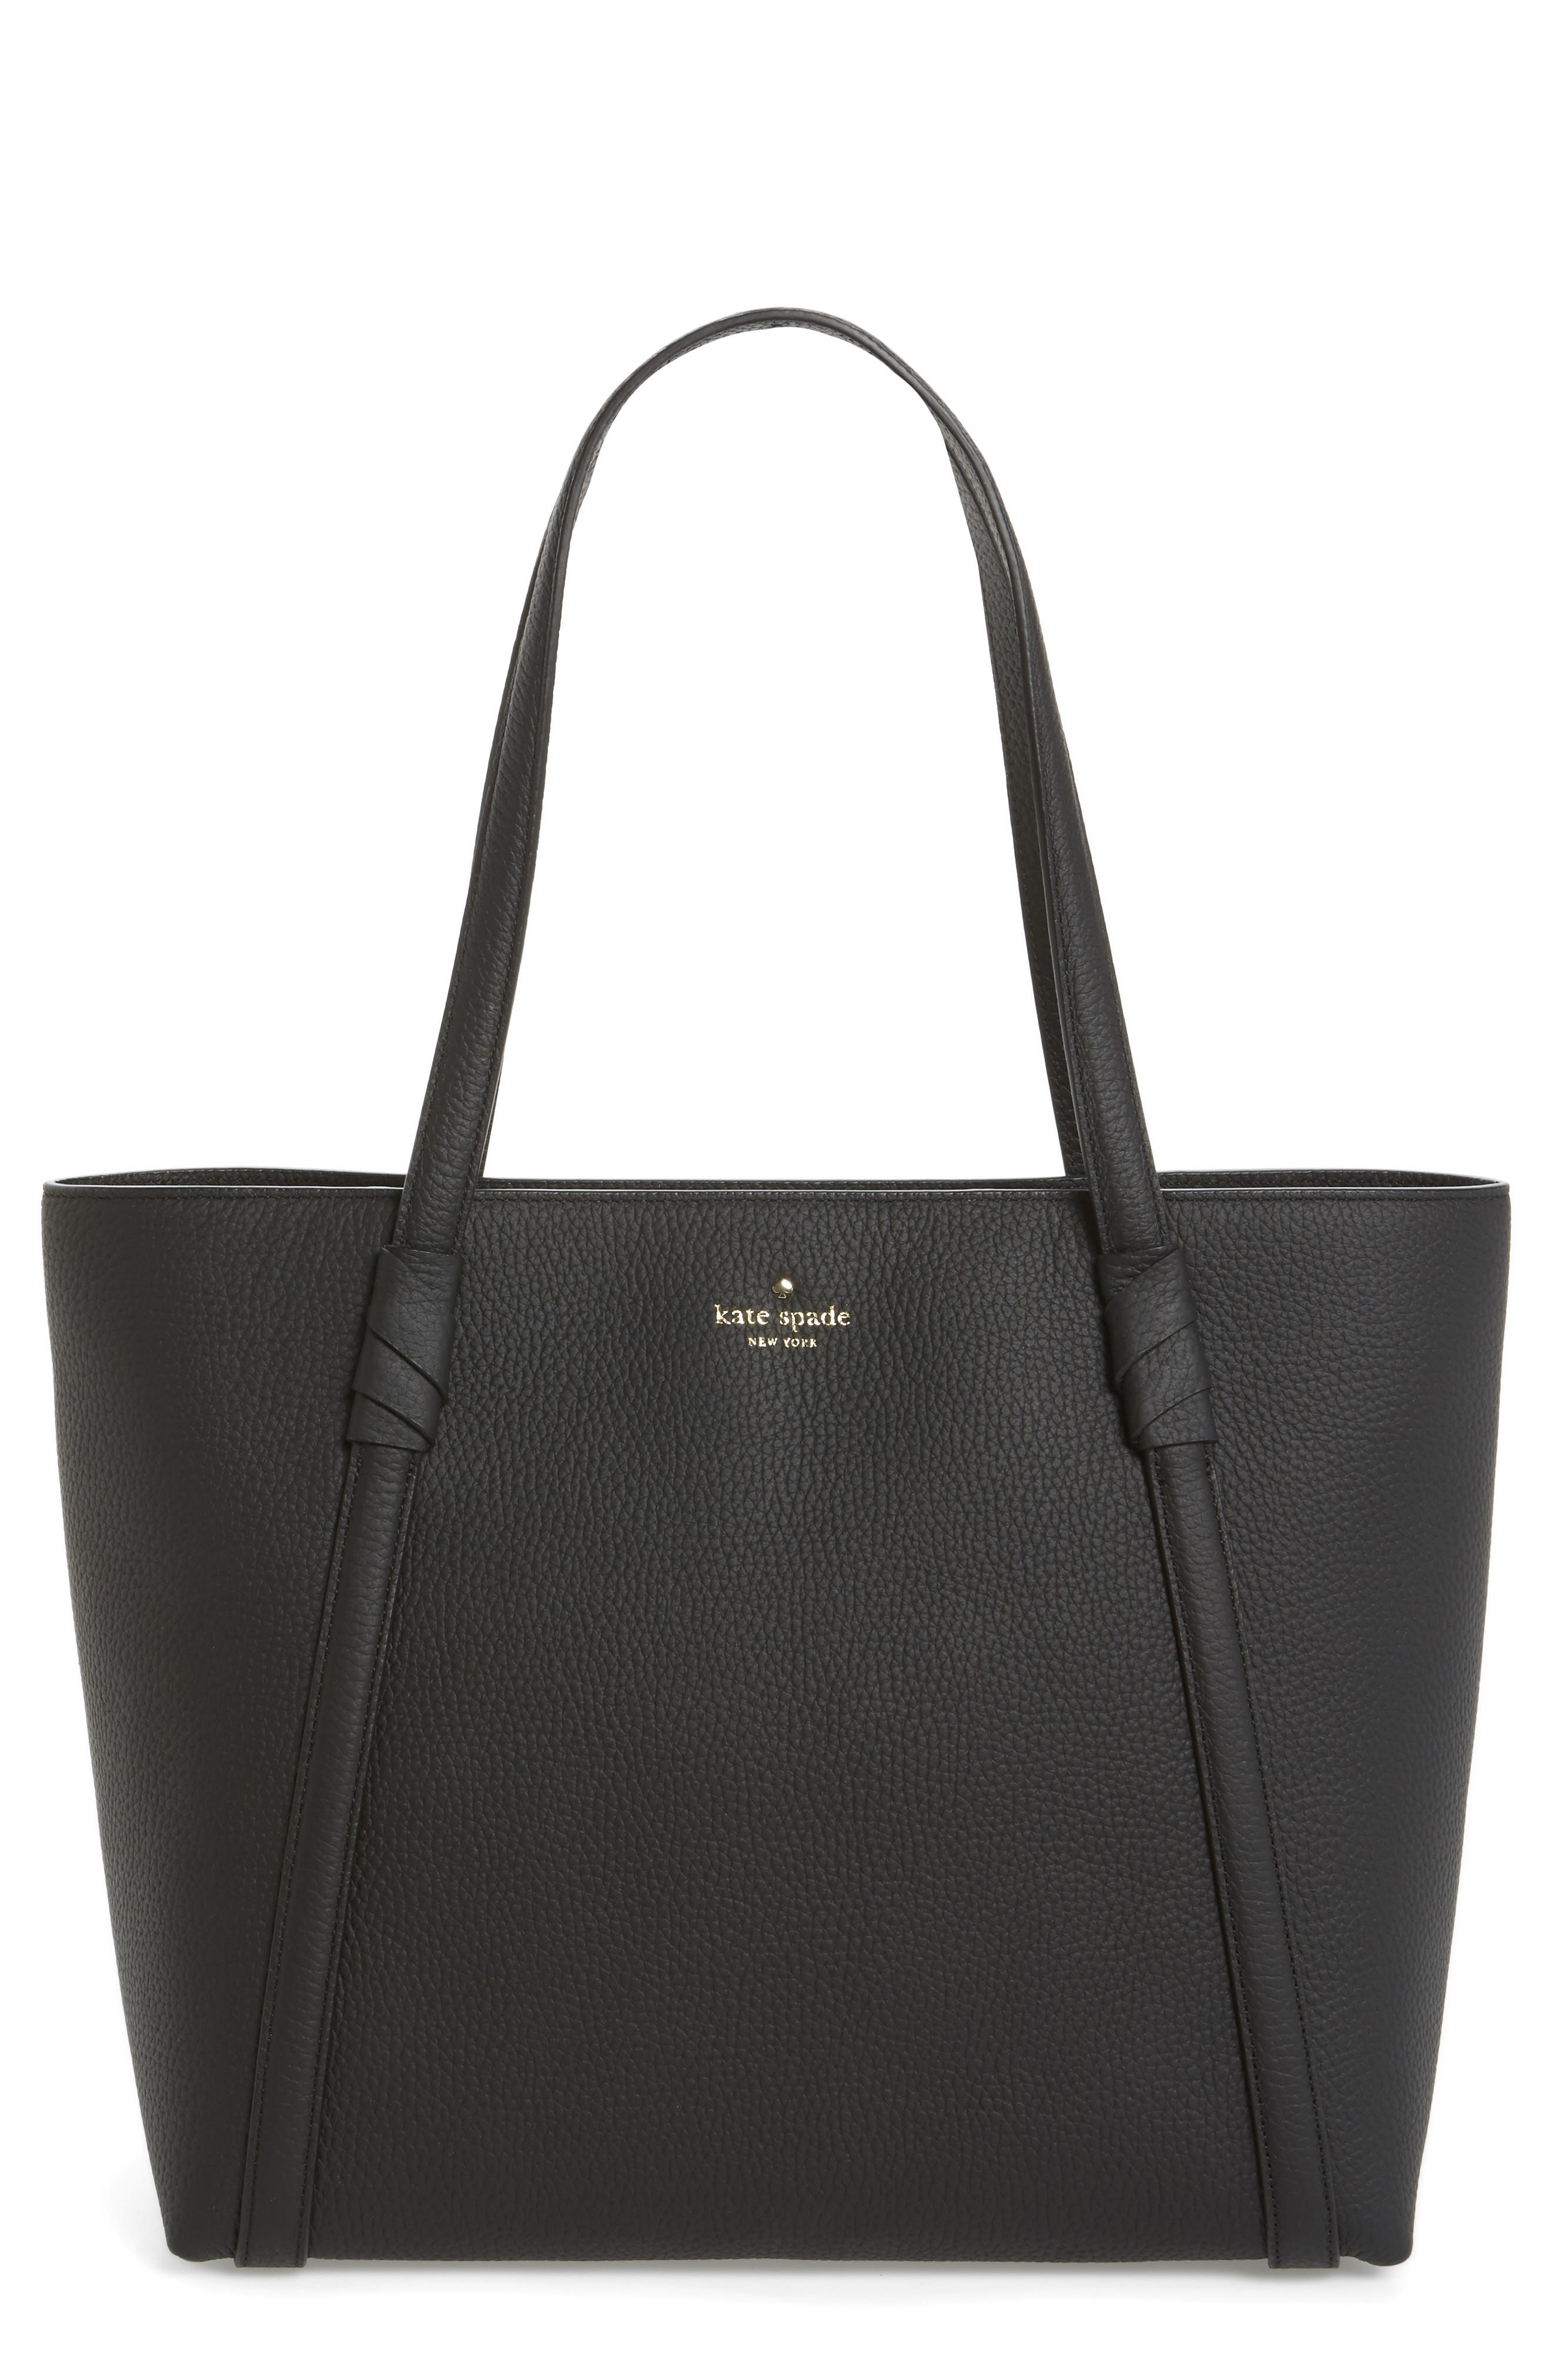 daniels drive - cherie leather tote,                         Main,                         color, Black